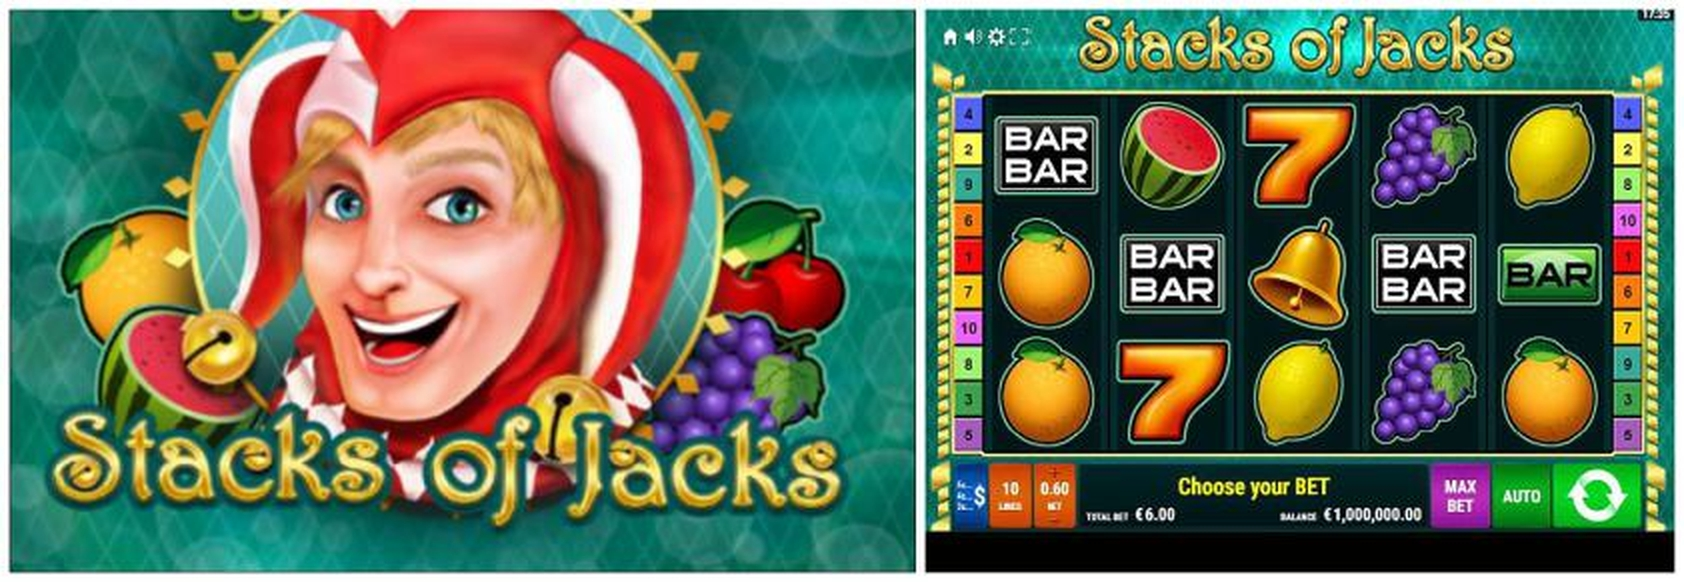 The Stacks of Jacks Online Slot Demo Game by Gamomat